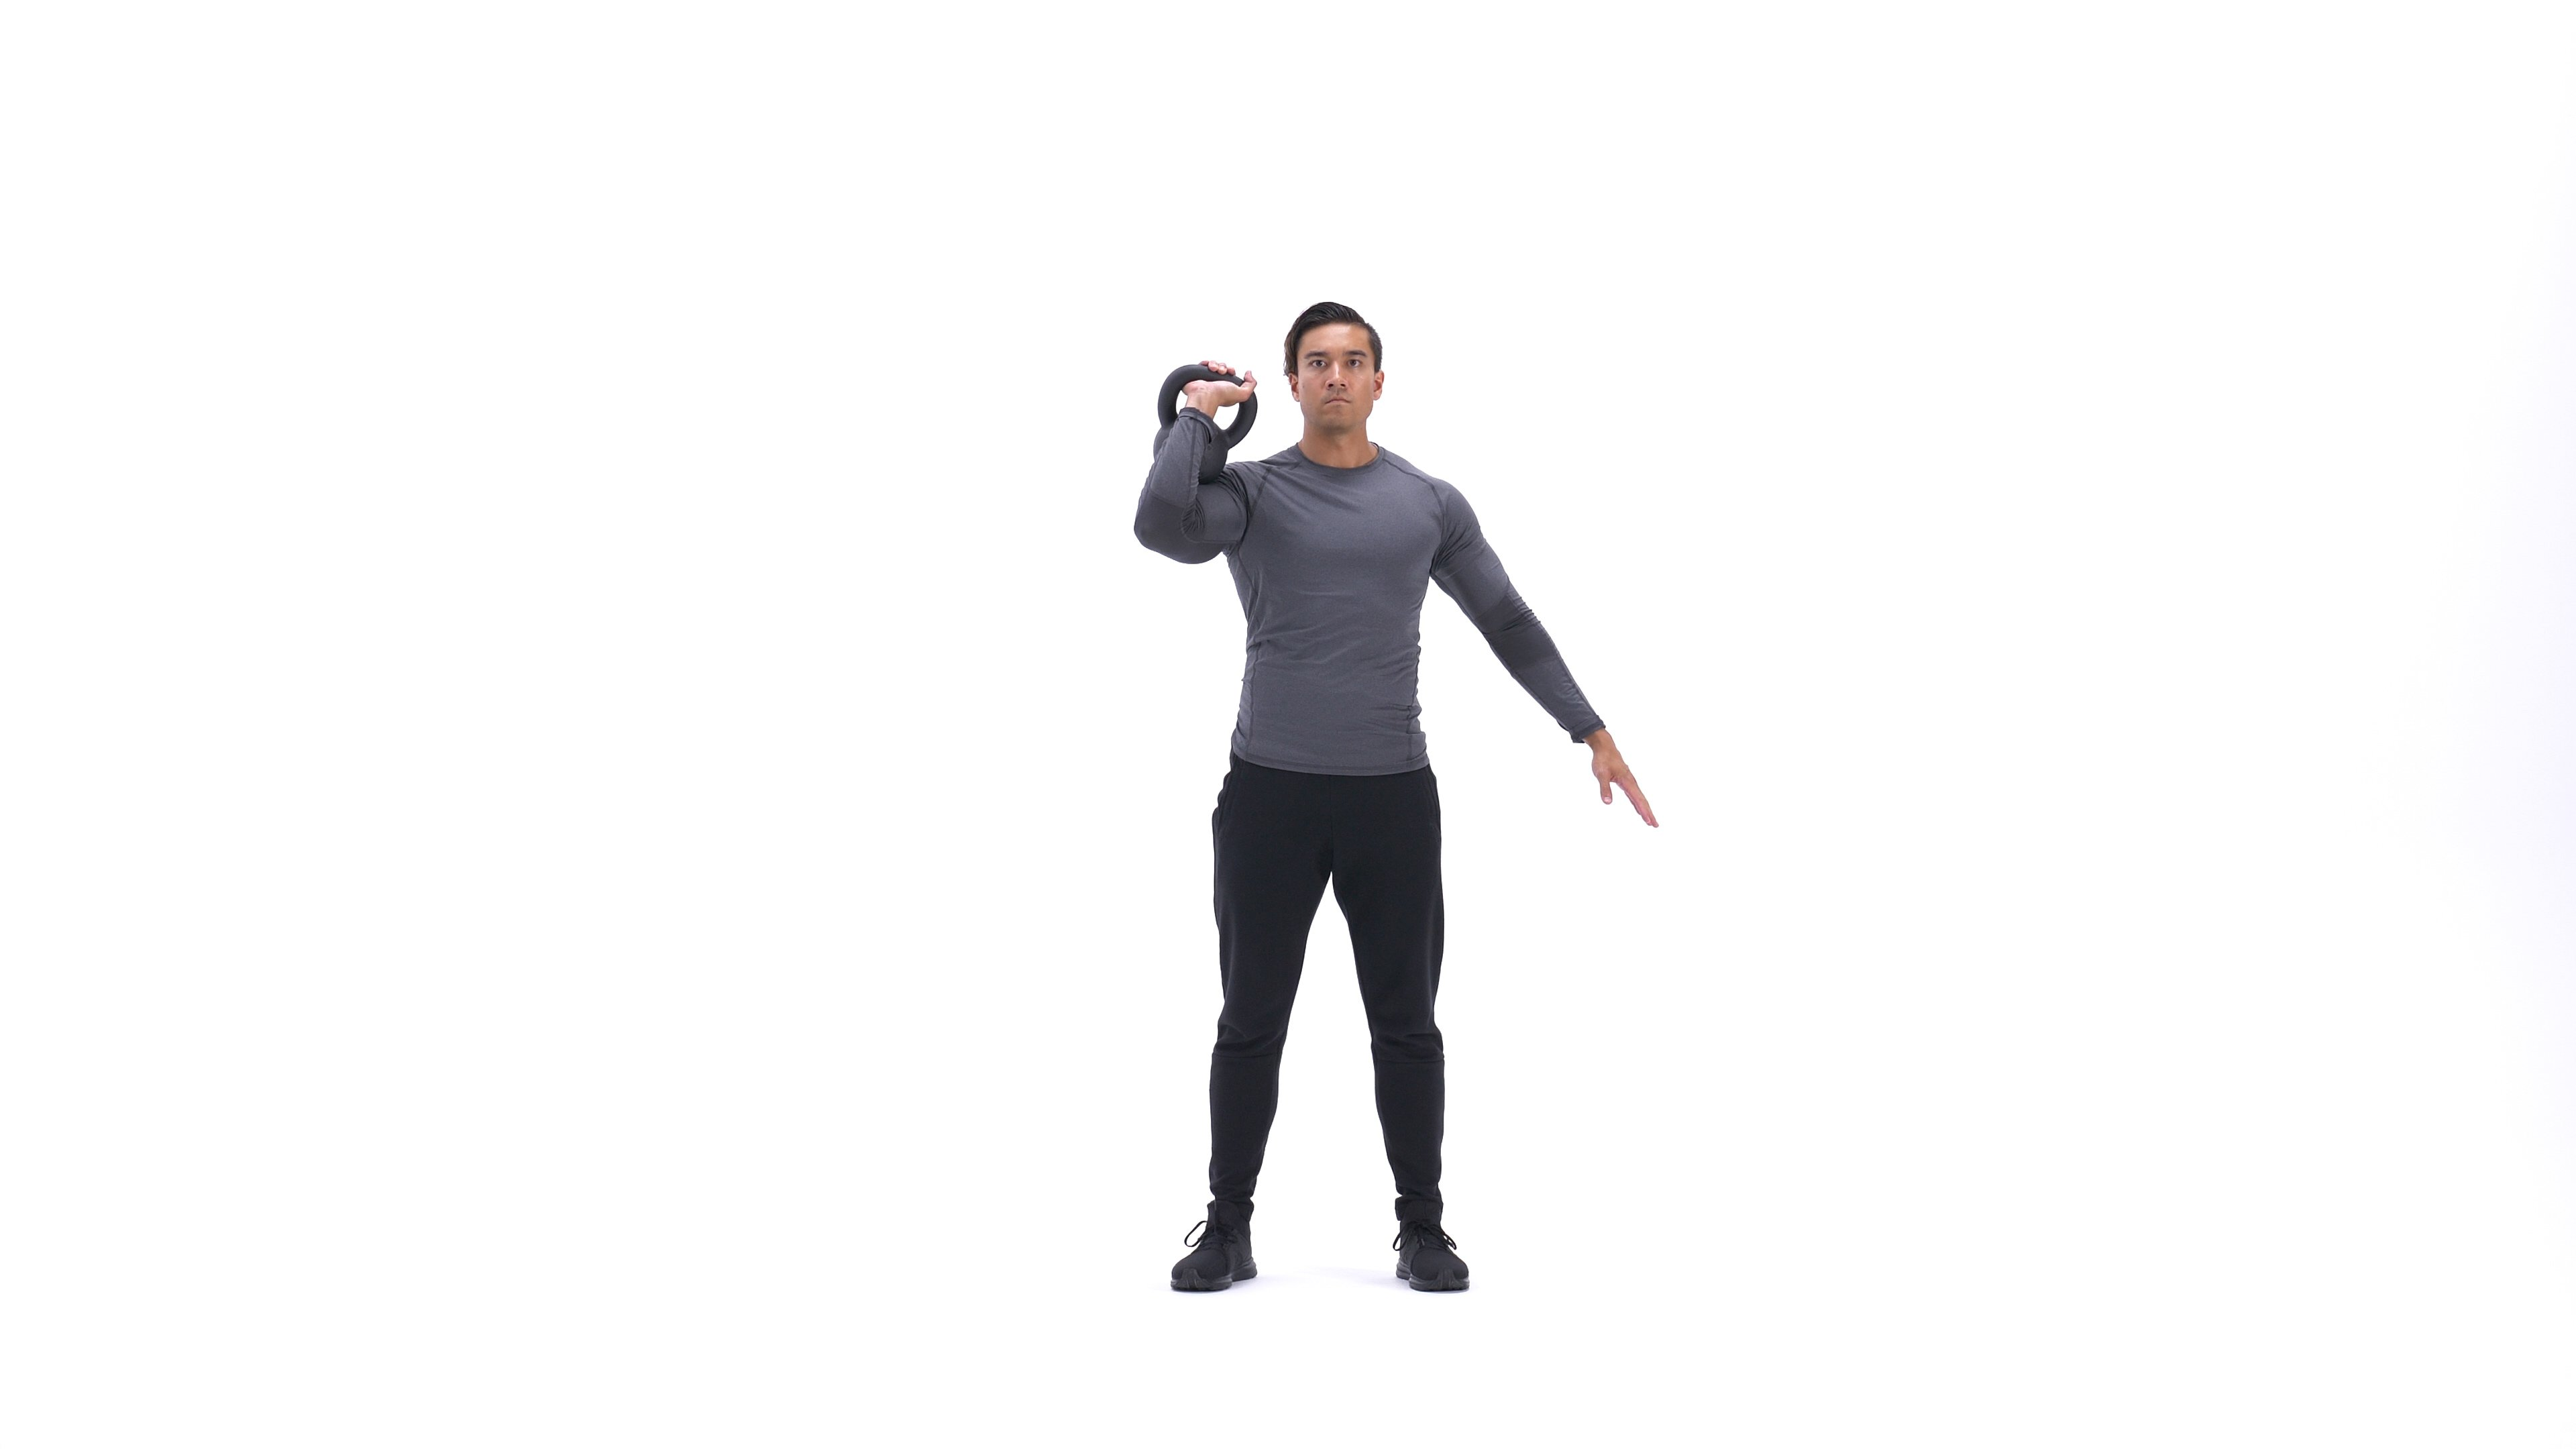 Single-arm kettlebell clean and jerk image